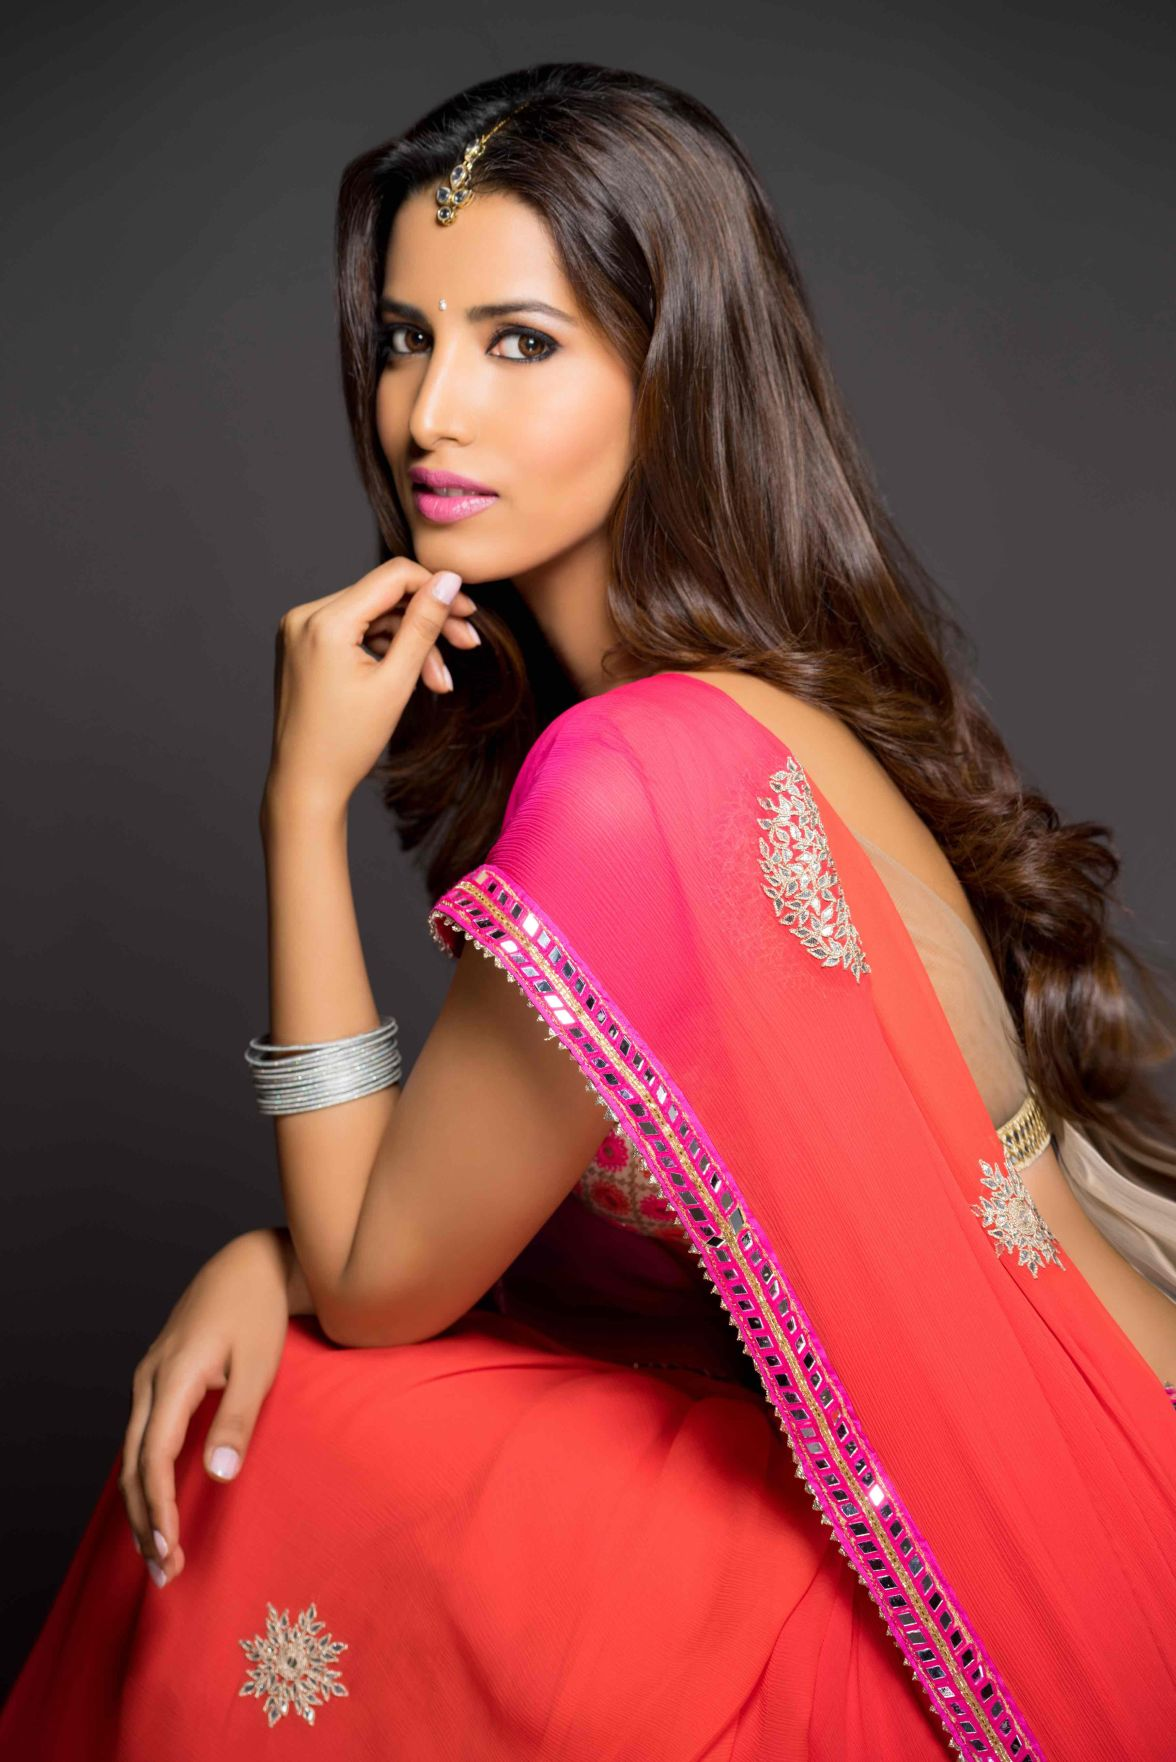 Manasvi mamgai saree photoshoot images